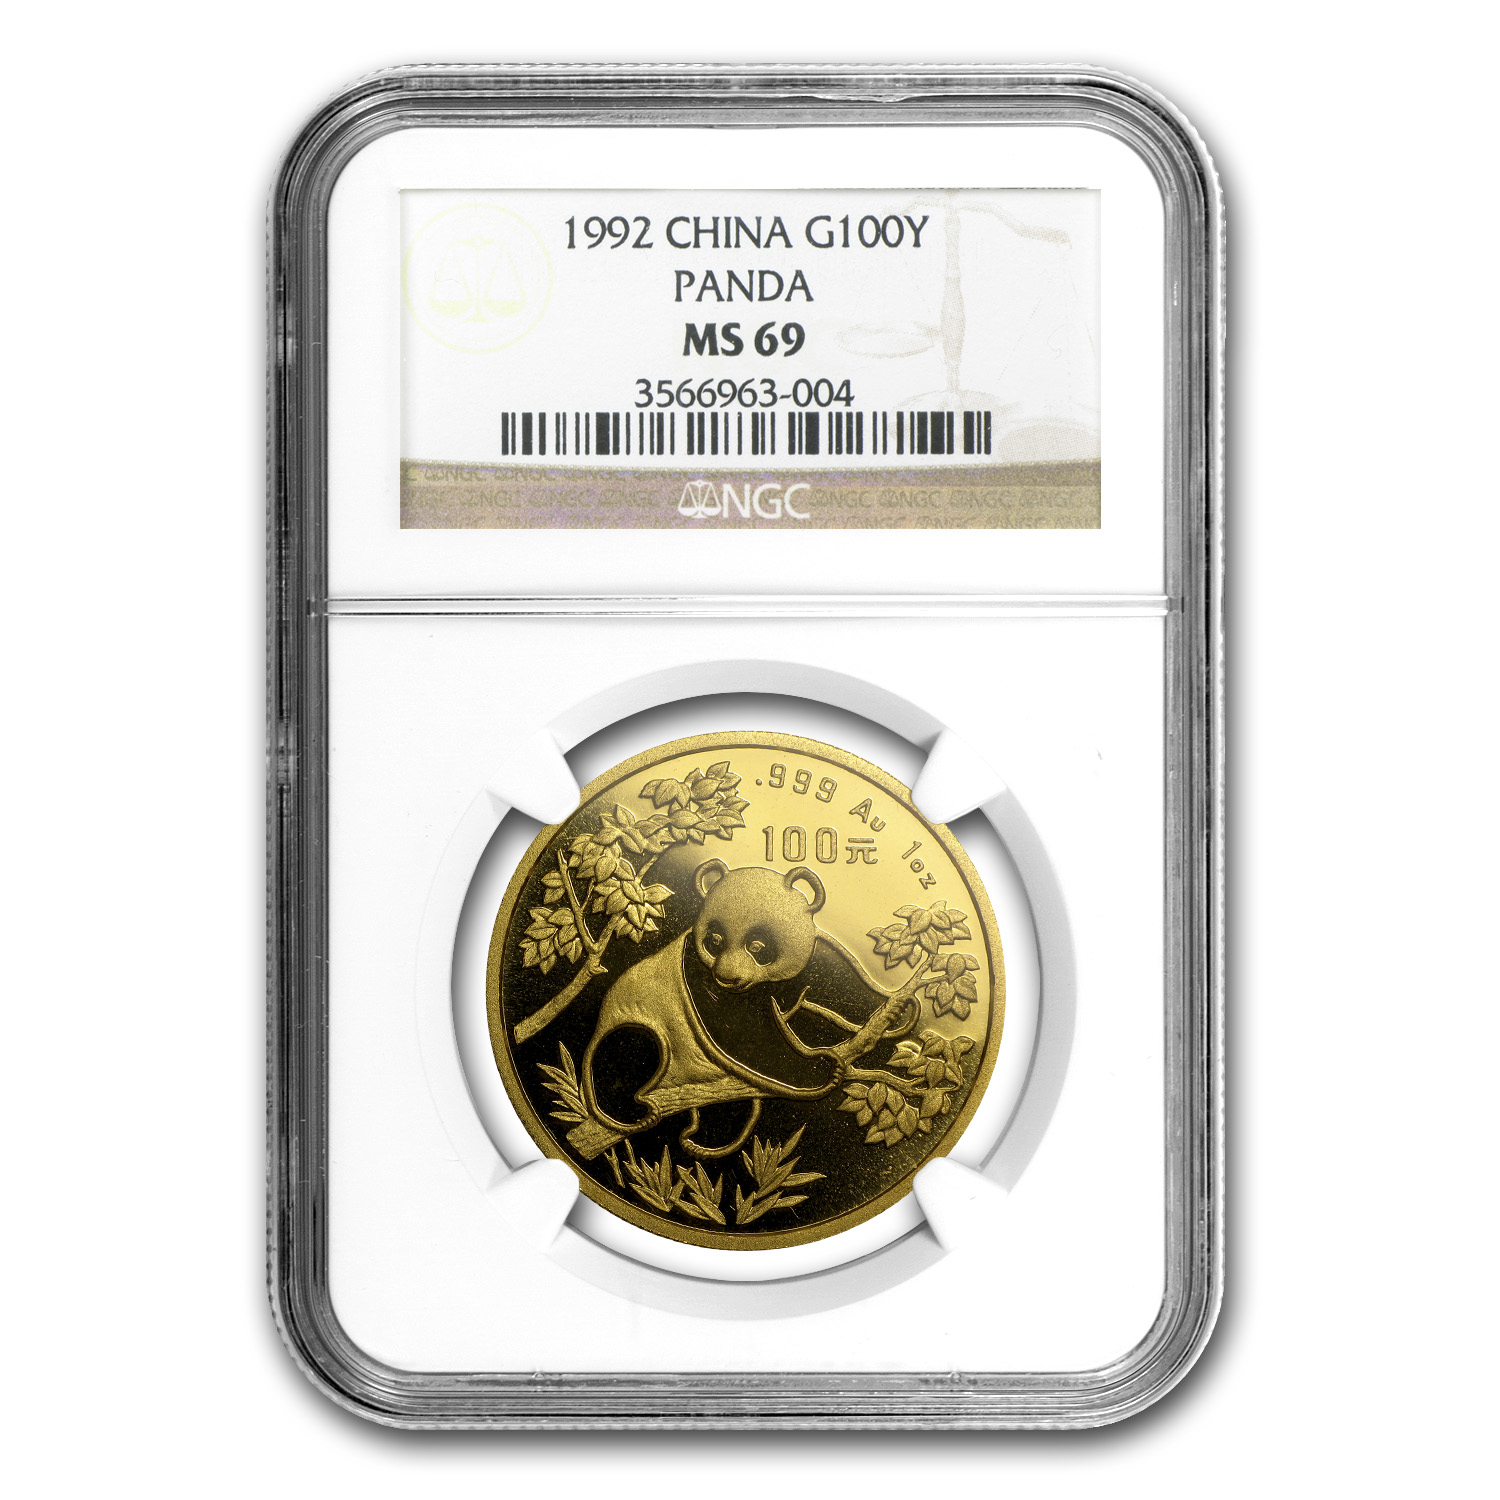 1992 1 oz Gold Chinese Panda MS-69 NGC - Small Date